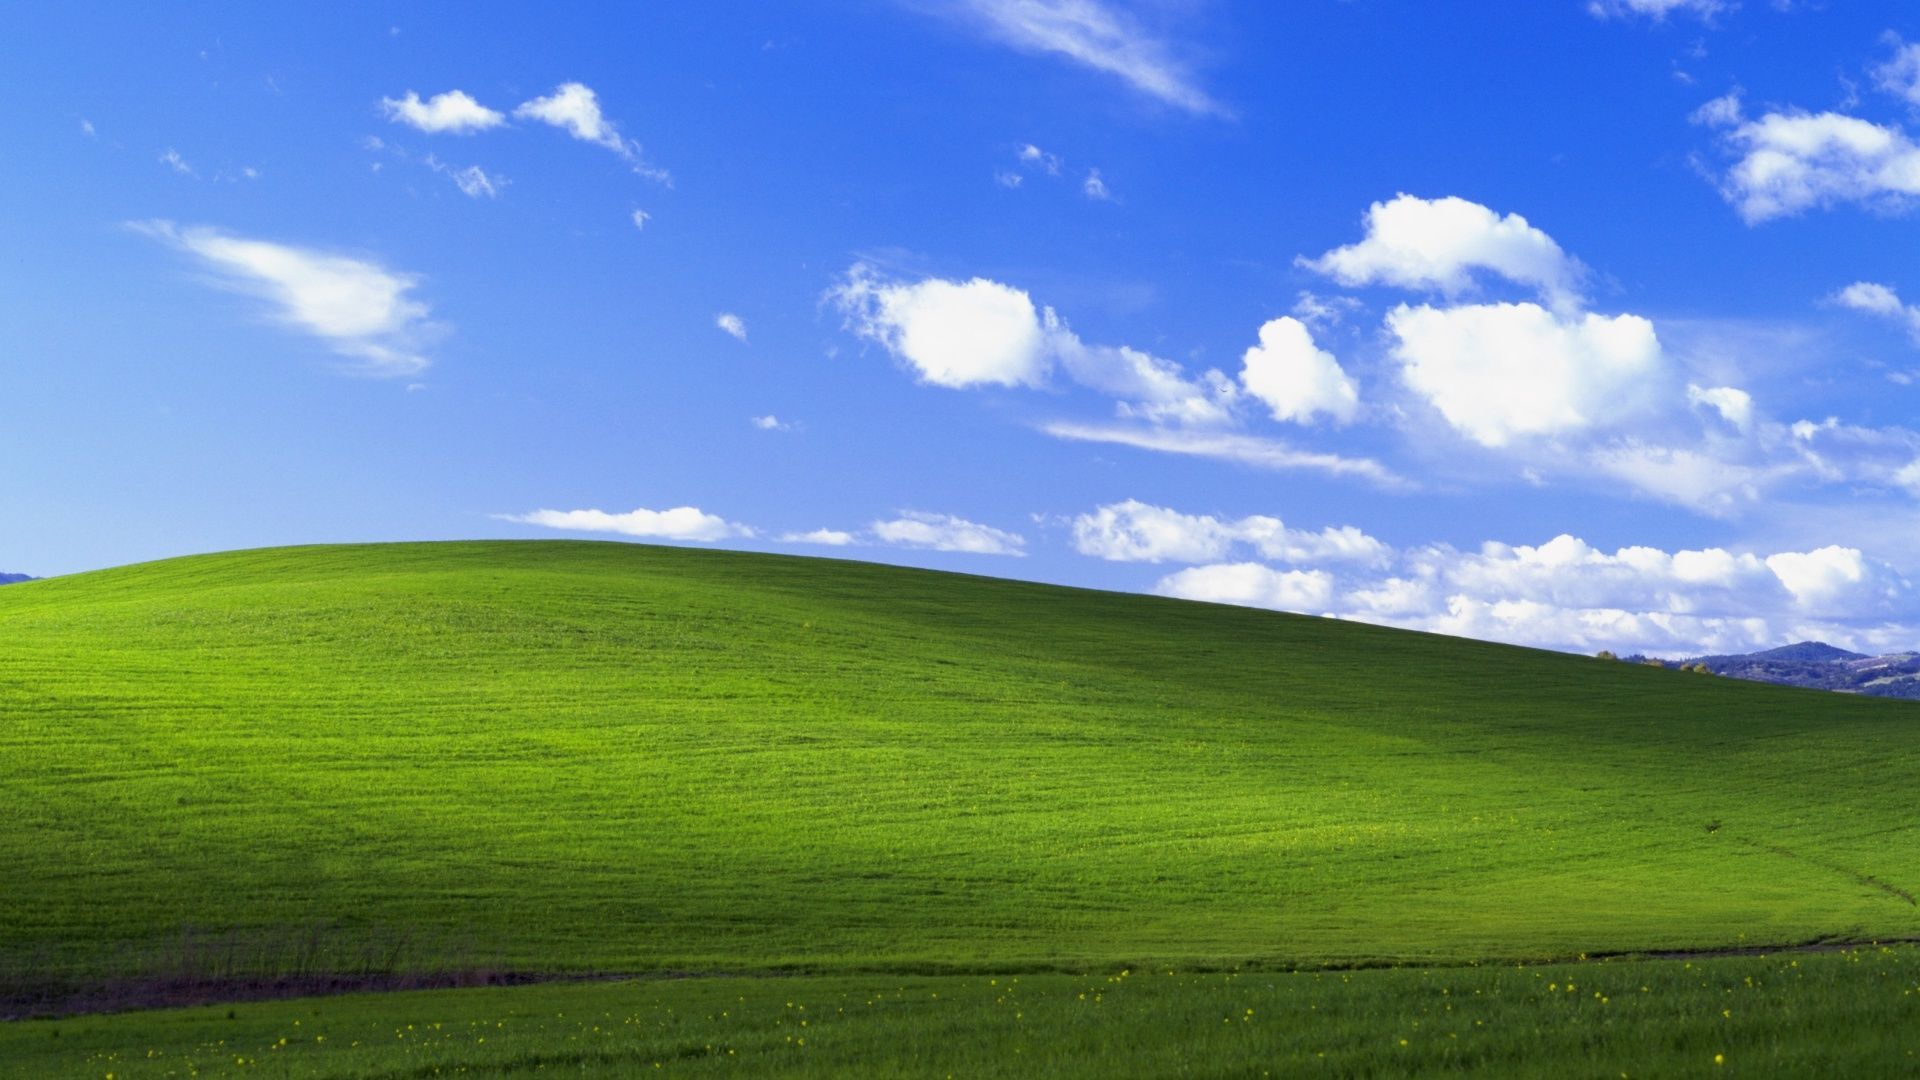 Windows Wallpapers 1920x1080 - Wallpaper Cave | Images Wallpapers ...